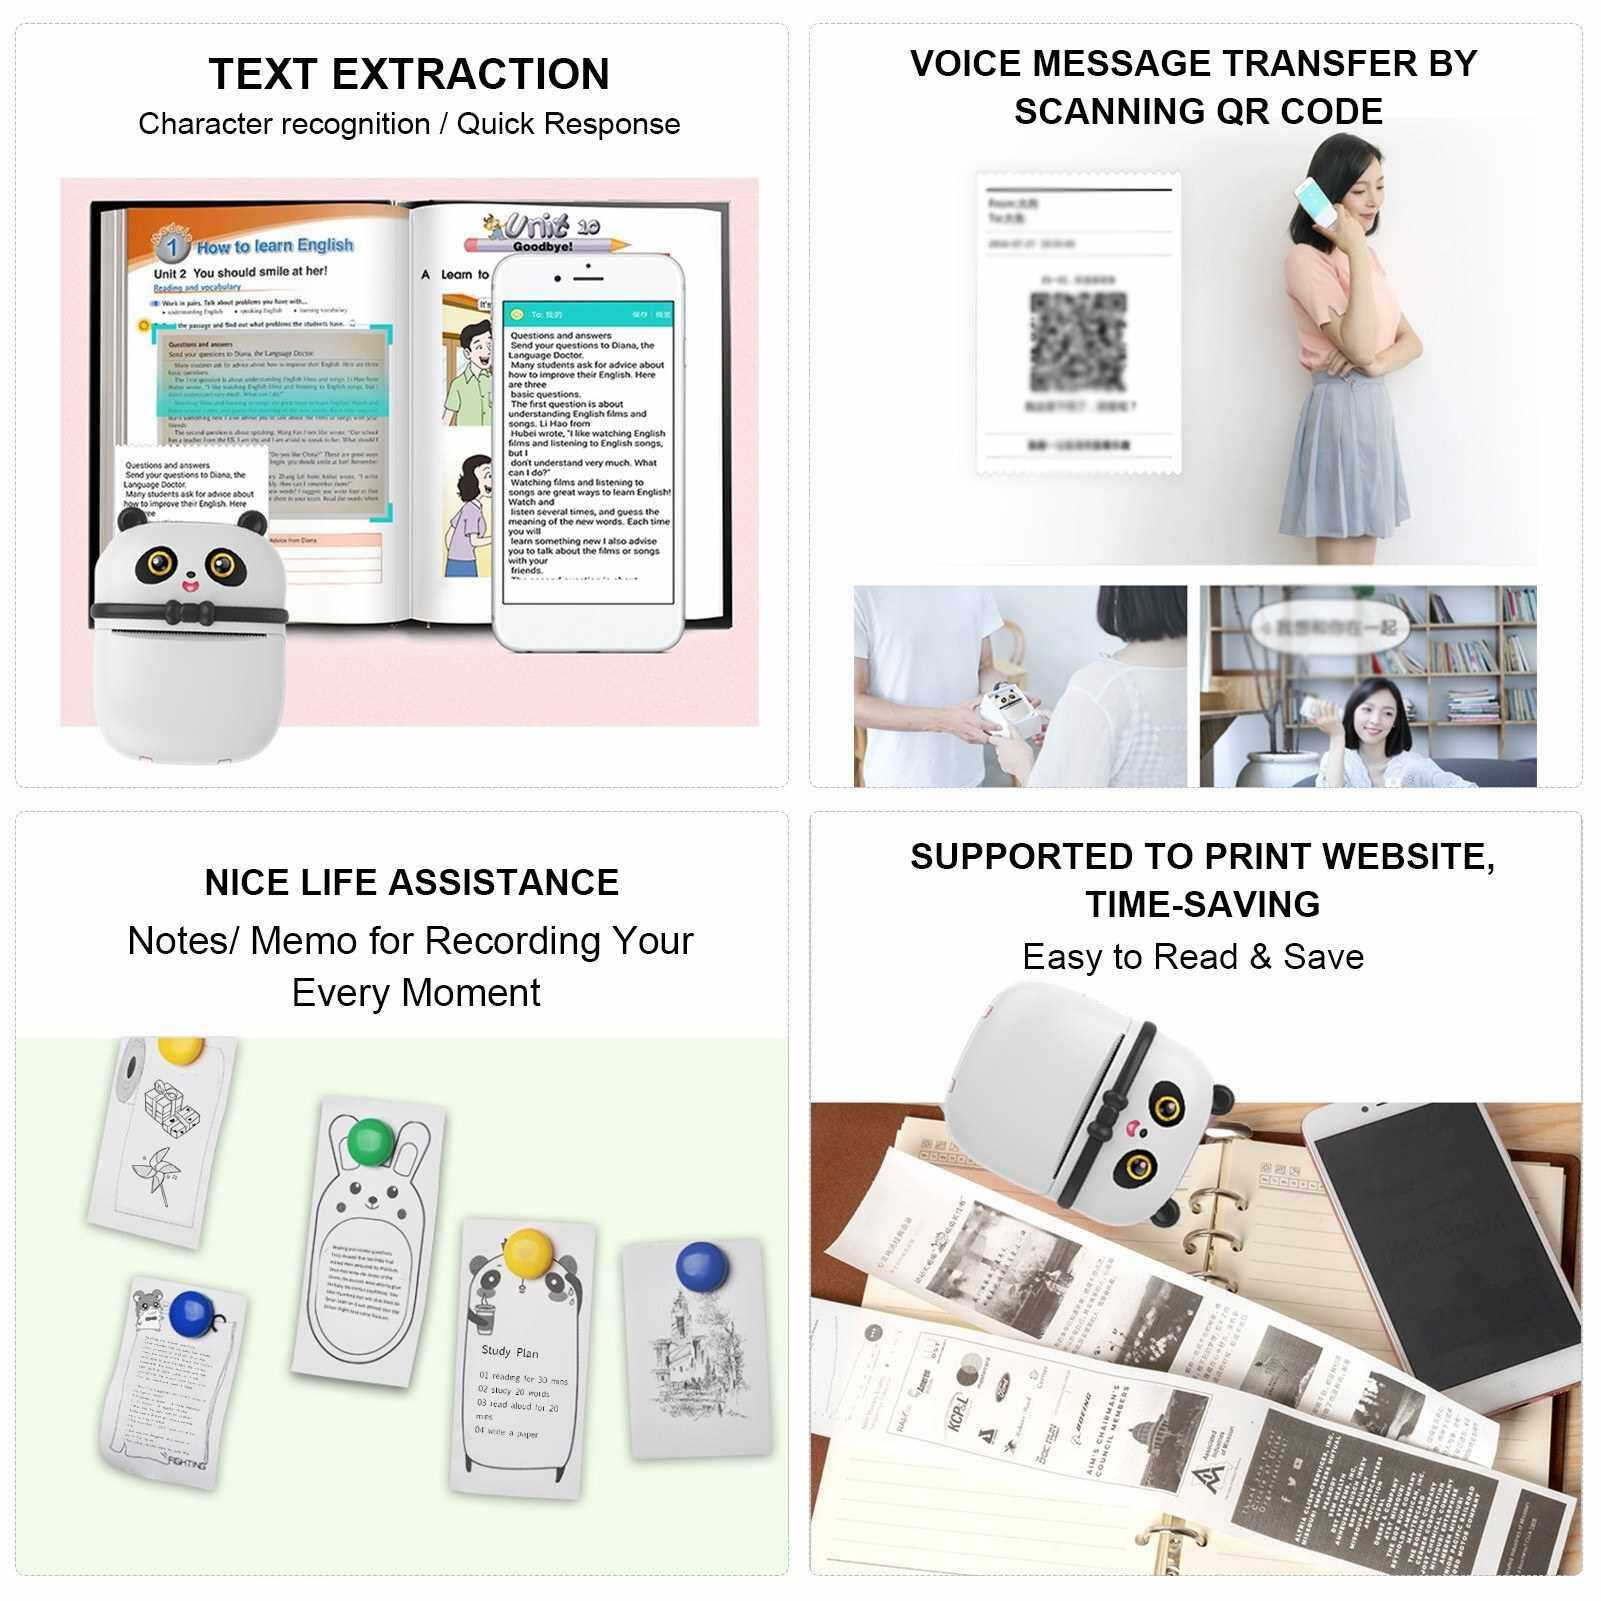 Mini Thermal Printer Wirelessly BT Connected 300dpi Photo Label Memo Wrong Question Printing Machine Tool Portable for Home Office Daily Use Students (White)